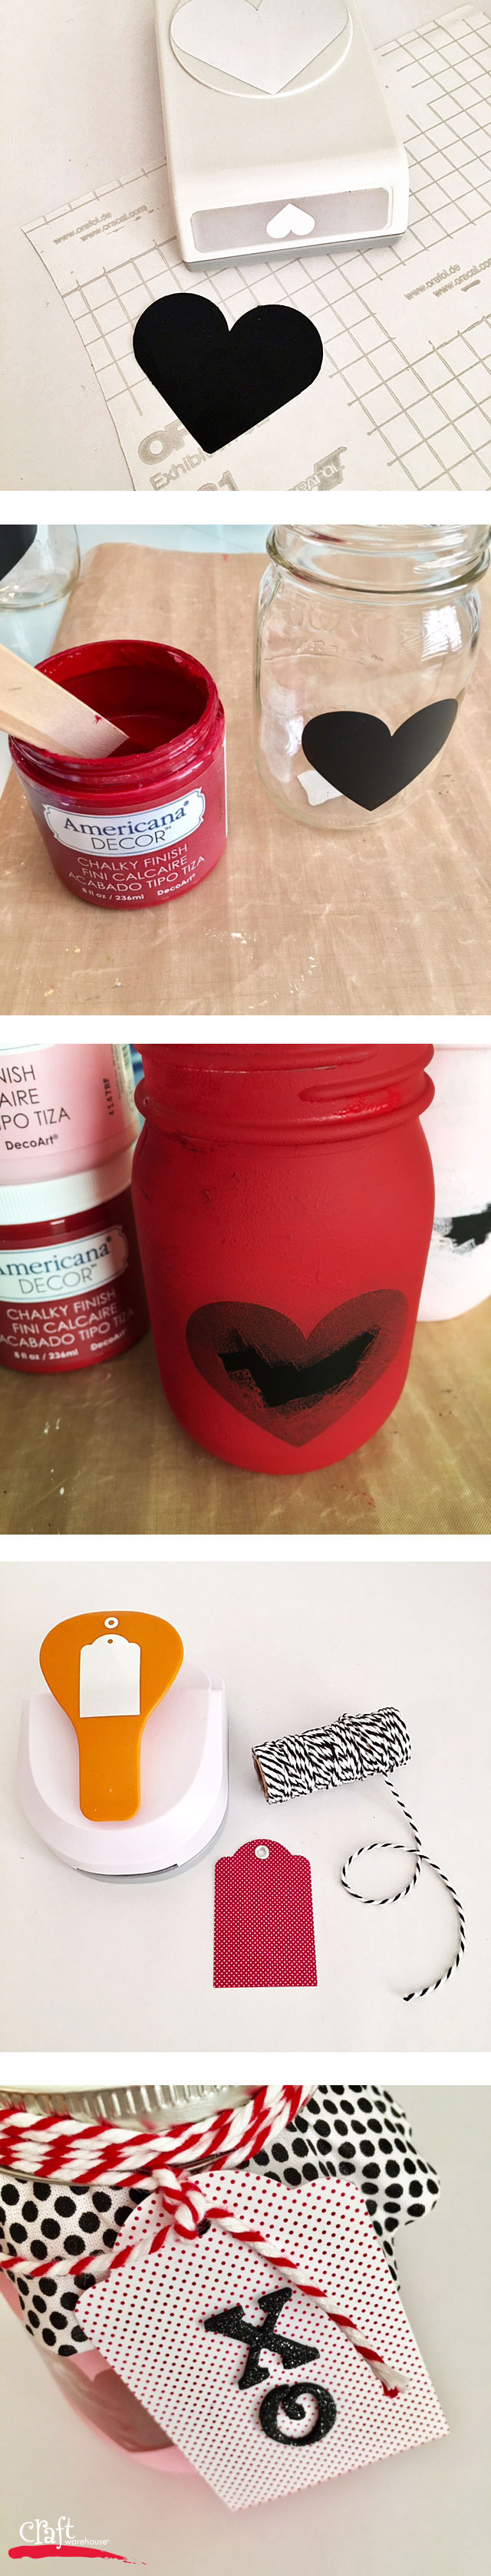 Tutorial on making Vlentines Mason Jar with Chalky Paint